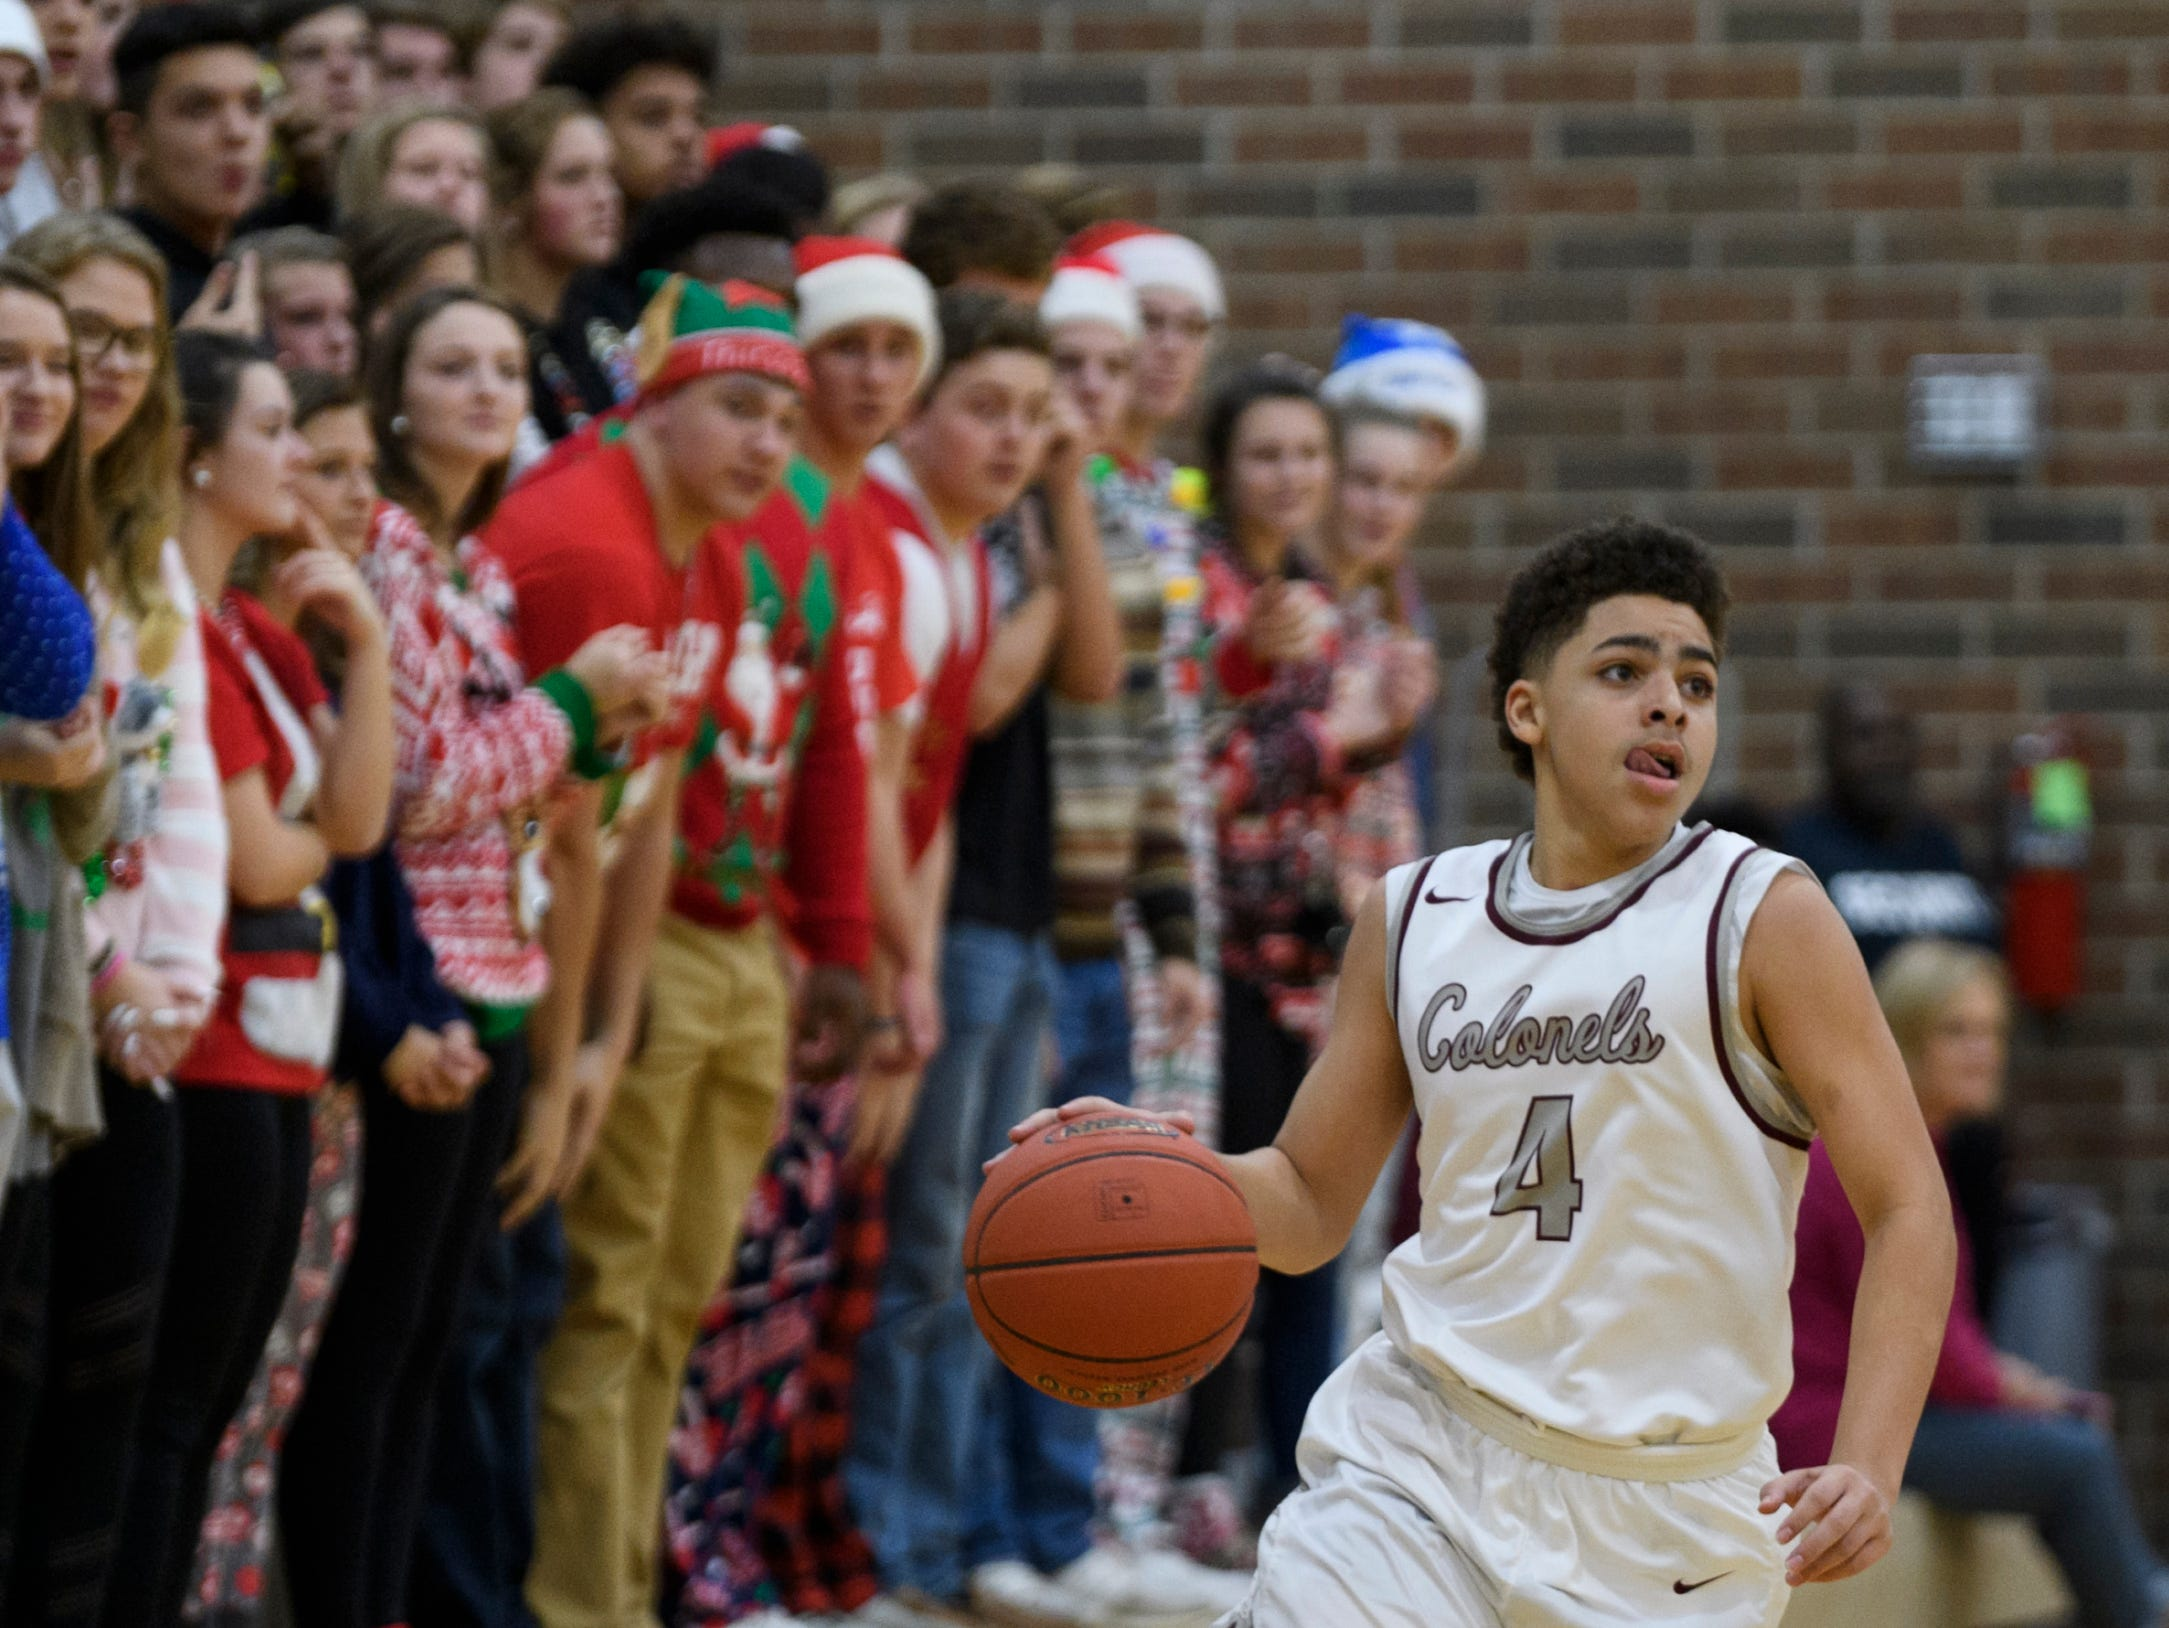 Henderson's Noah Curry (4) dribbles down the court during the second quarter against the Crittenden County Rockets at Henderson County High School in Henderson, Ky., Tuesday, Dec. 18, 2018.  The Colonels defeated the Rockets 88-52.